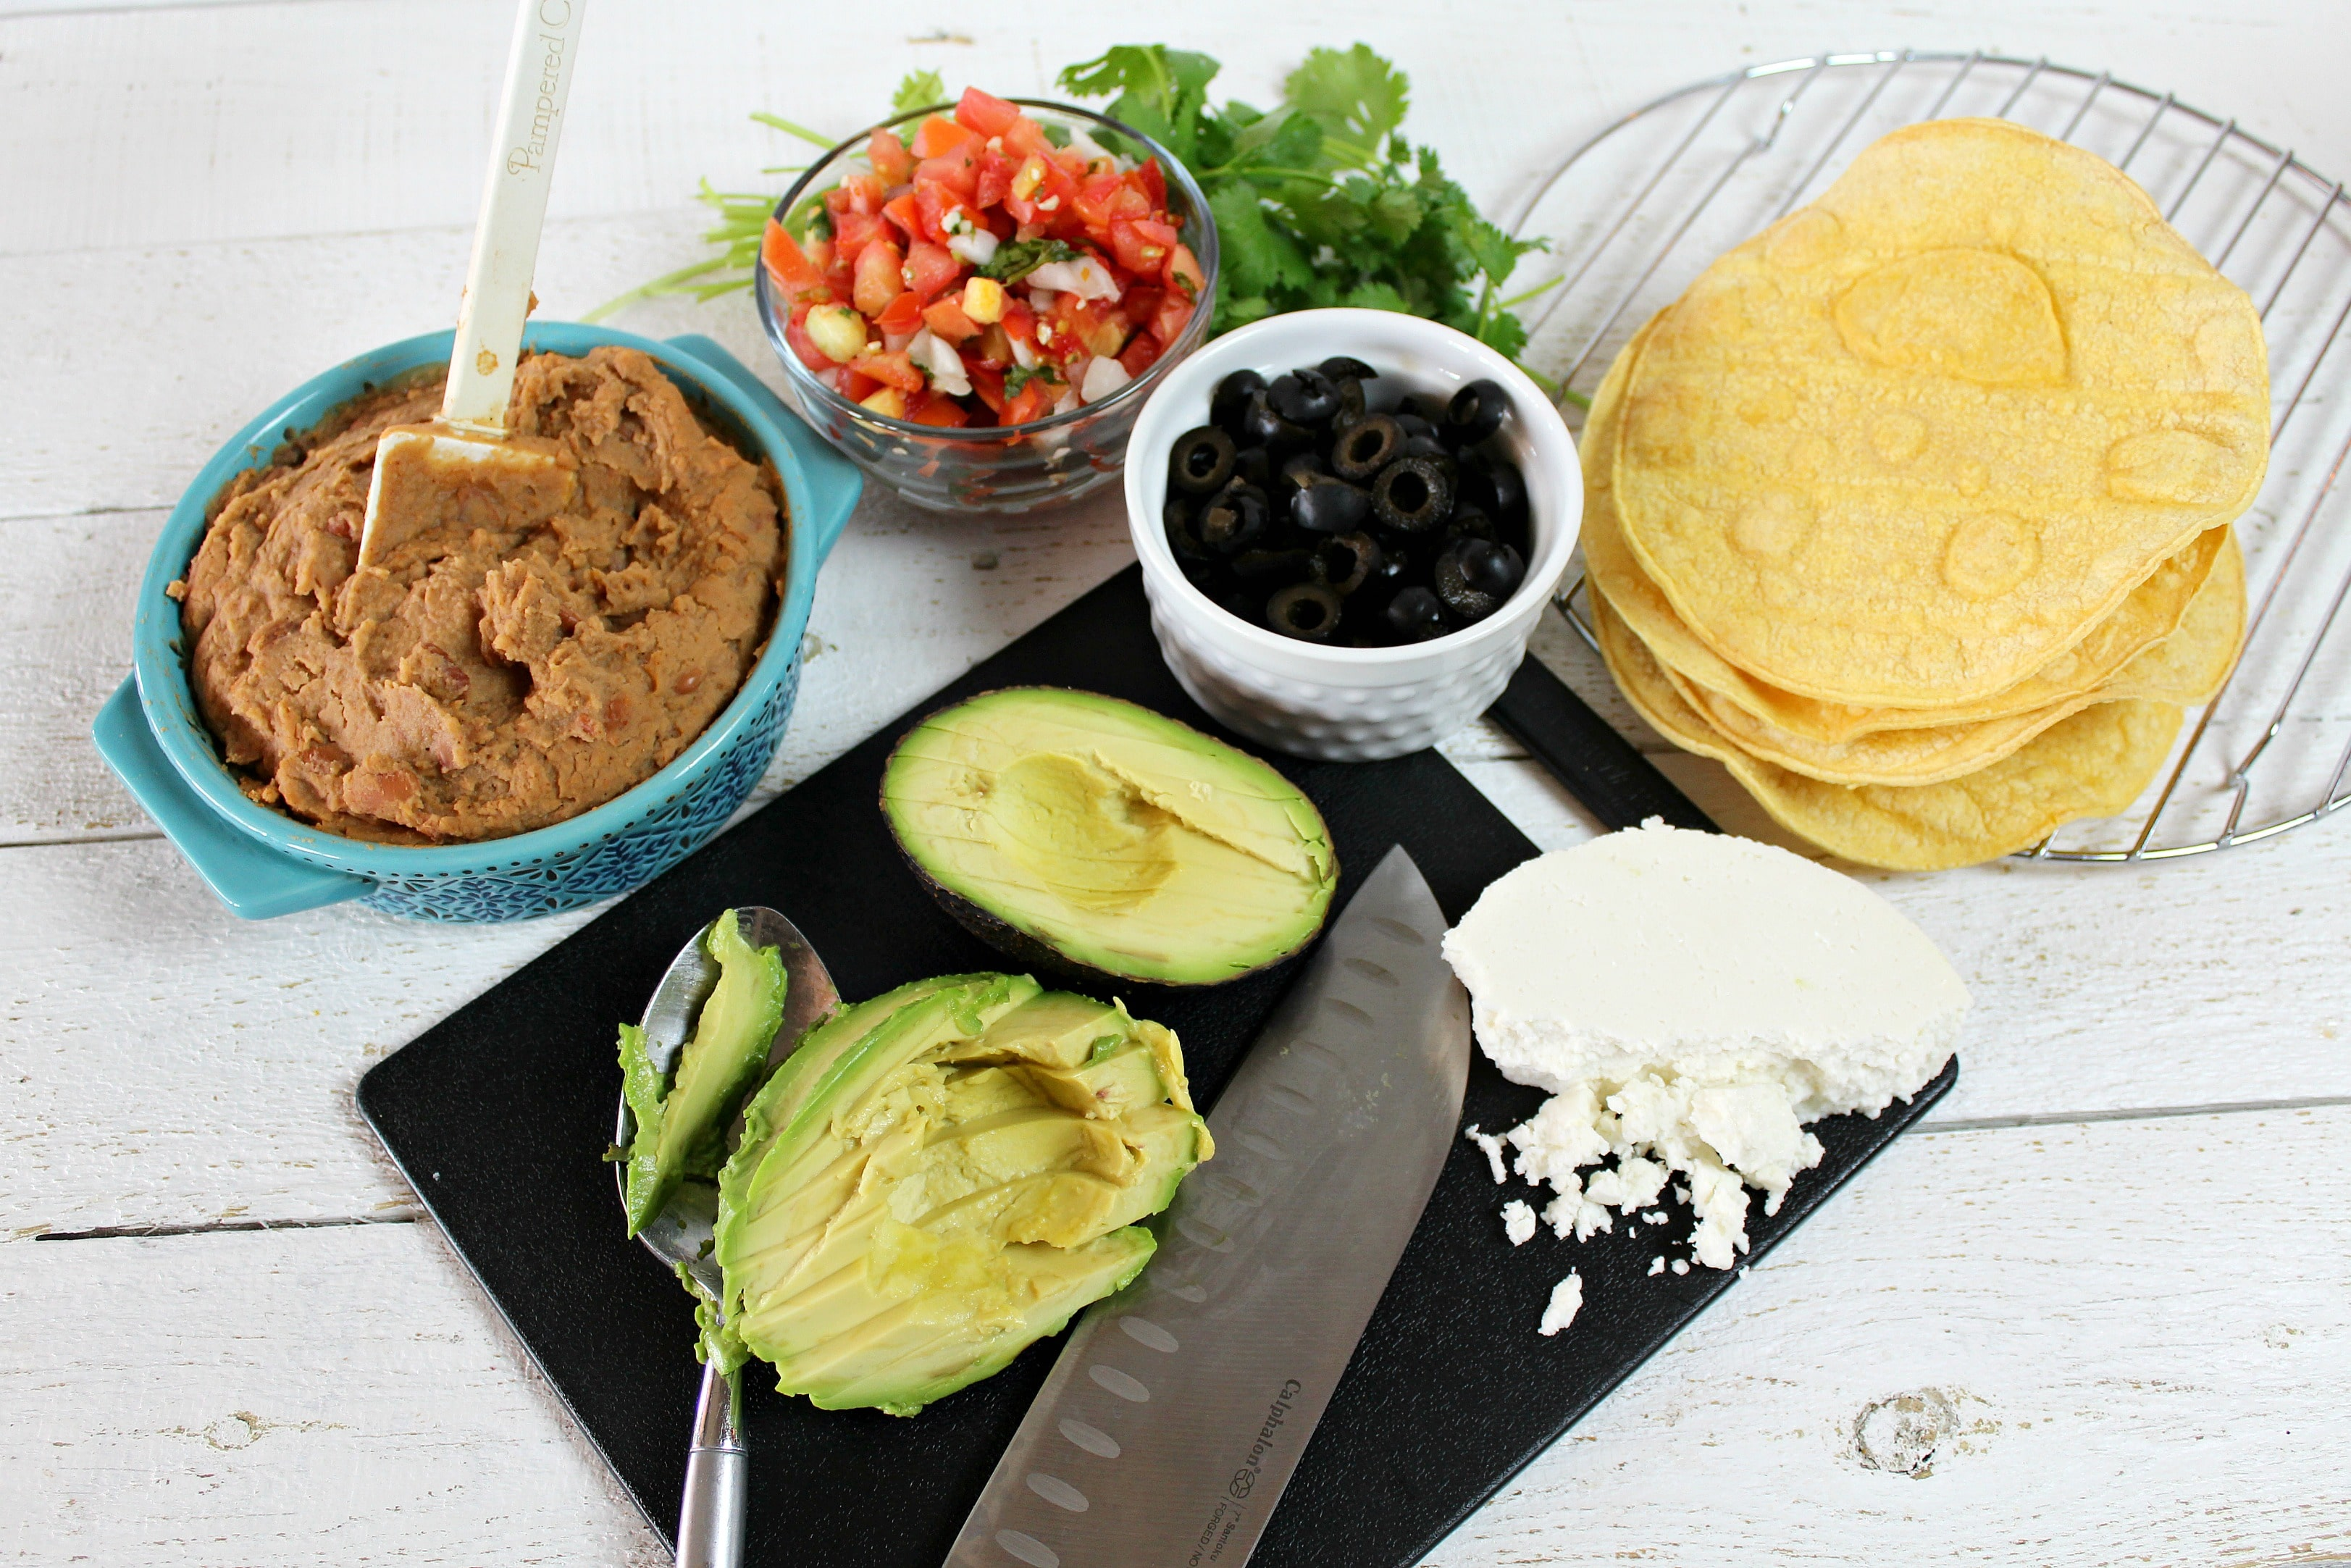 Slice the avocado and assemble the ingredients including the beans, salsa, cilantro, olives and of course, the tortillas.